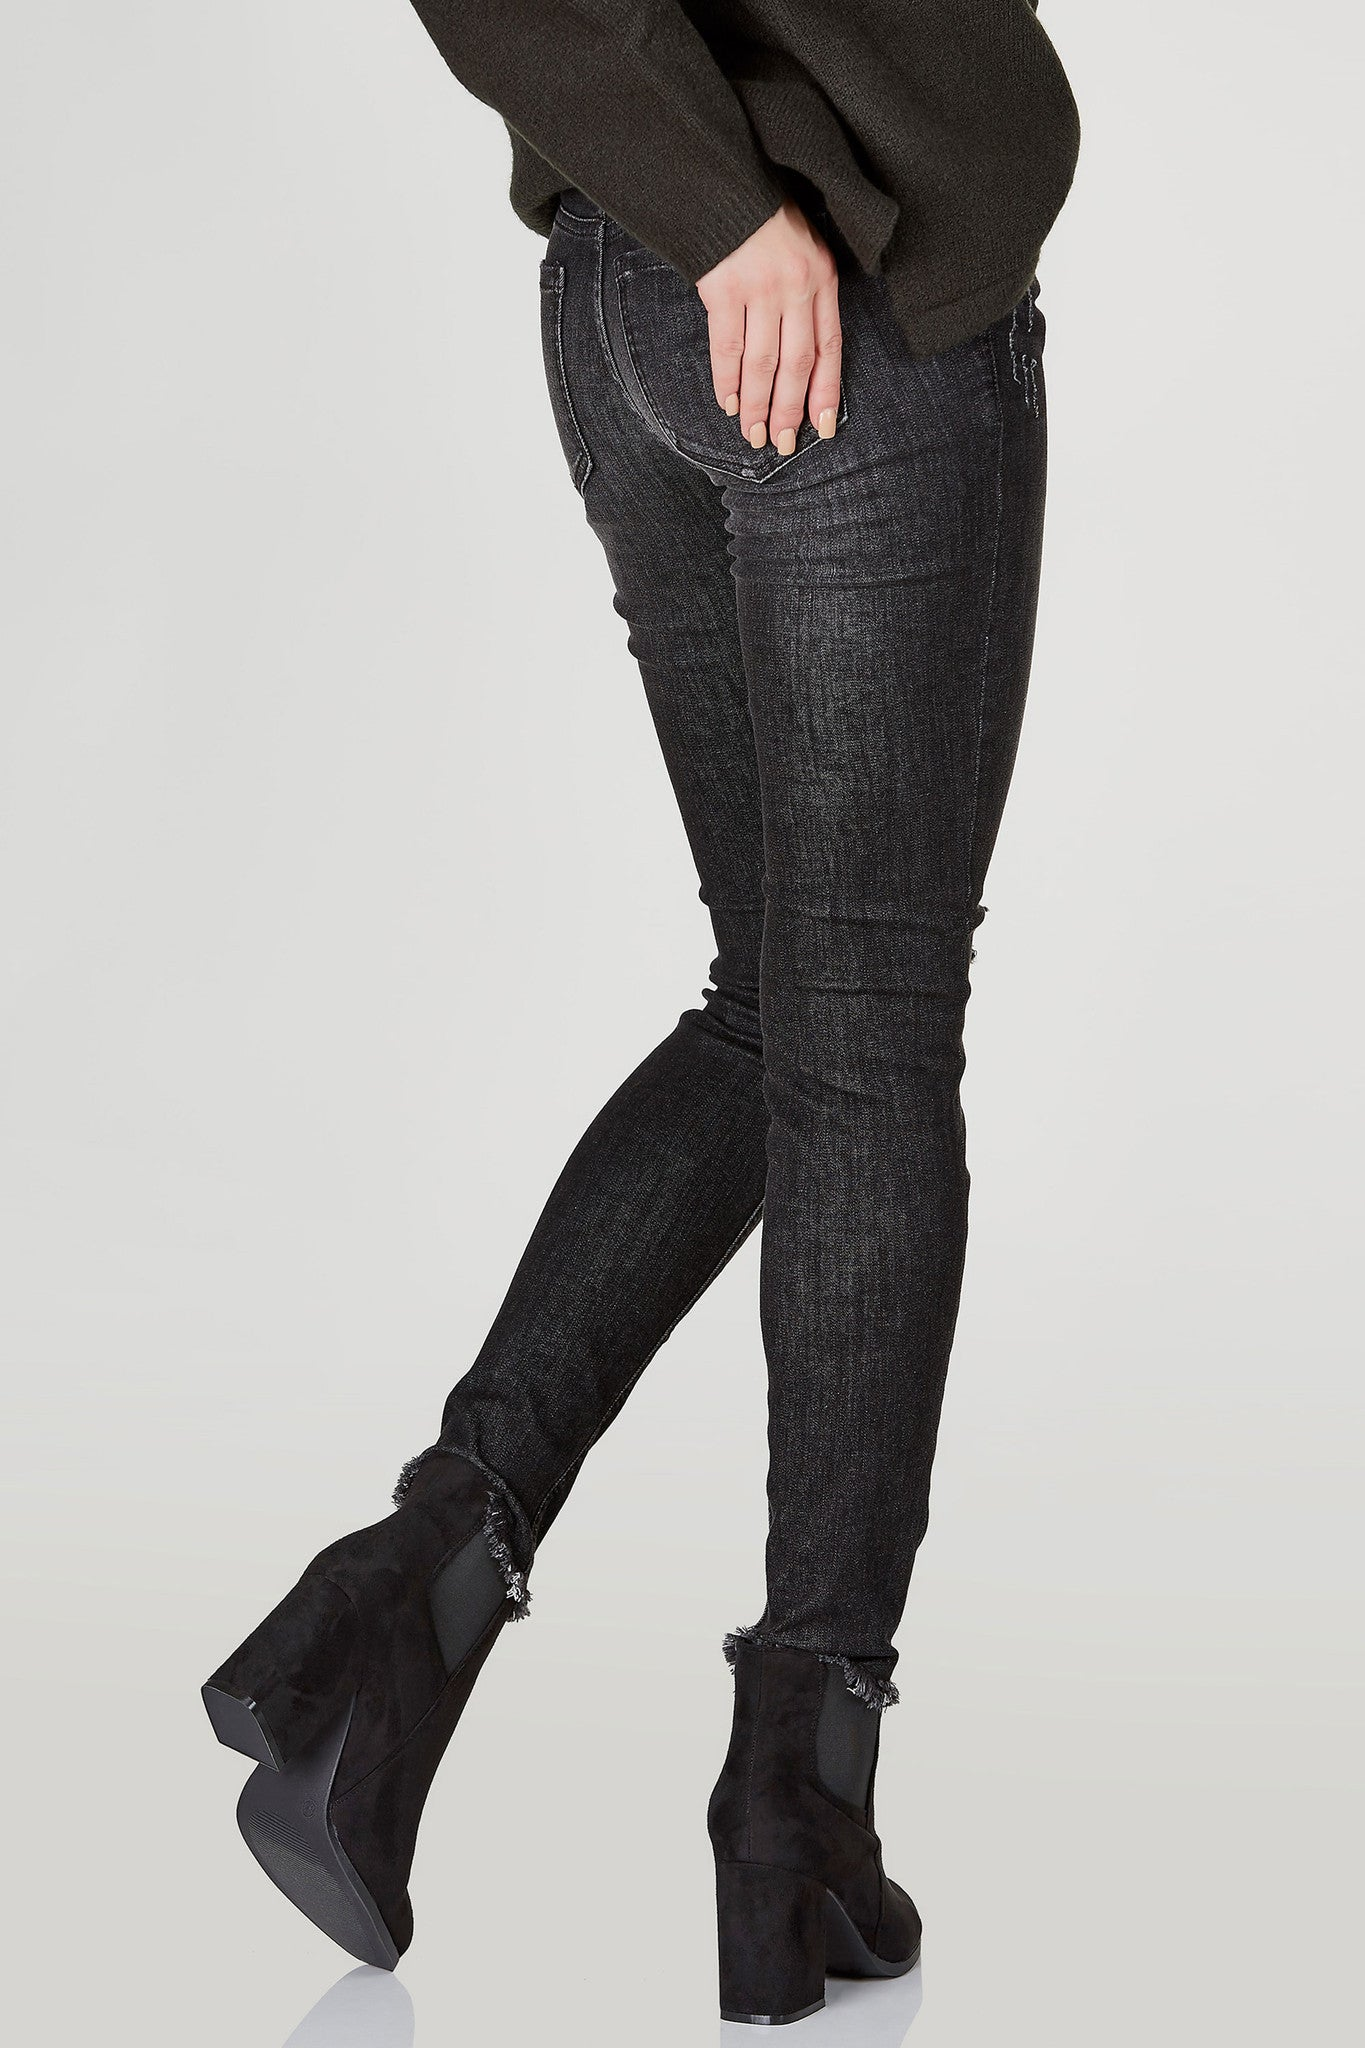 A basic pair of skinny jeans with a comfy low rise waist. Slight distressing at knees bring a casual chic vibe. Raw, frayed hem with a classic slim fit. Pair with a bodysuit and sneakers for a laid back look.